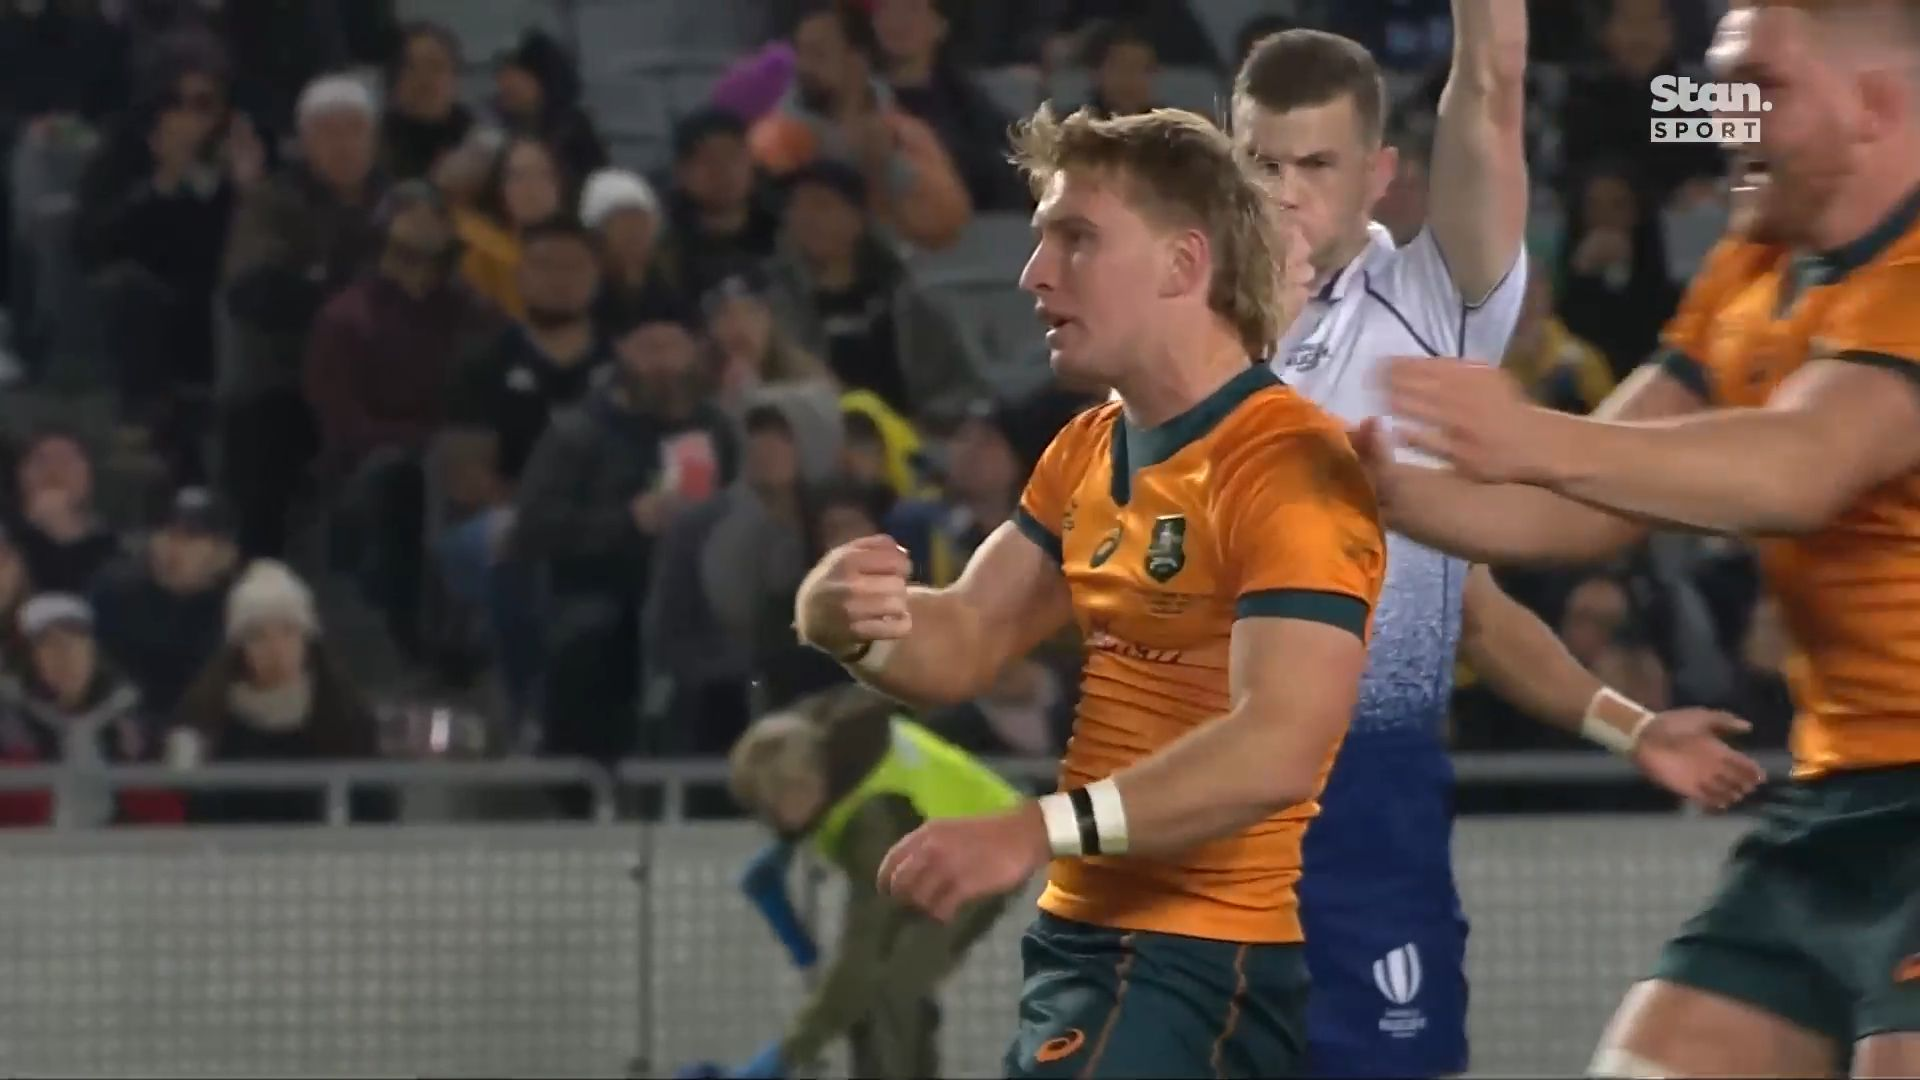 Queensland to host Rugby Championship, Bledisloe Cup schedule still up in the air